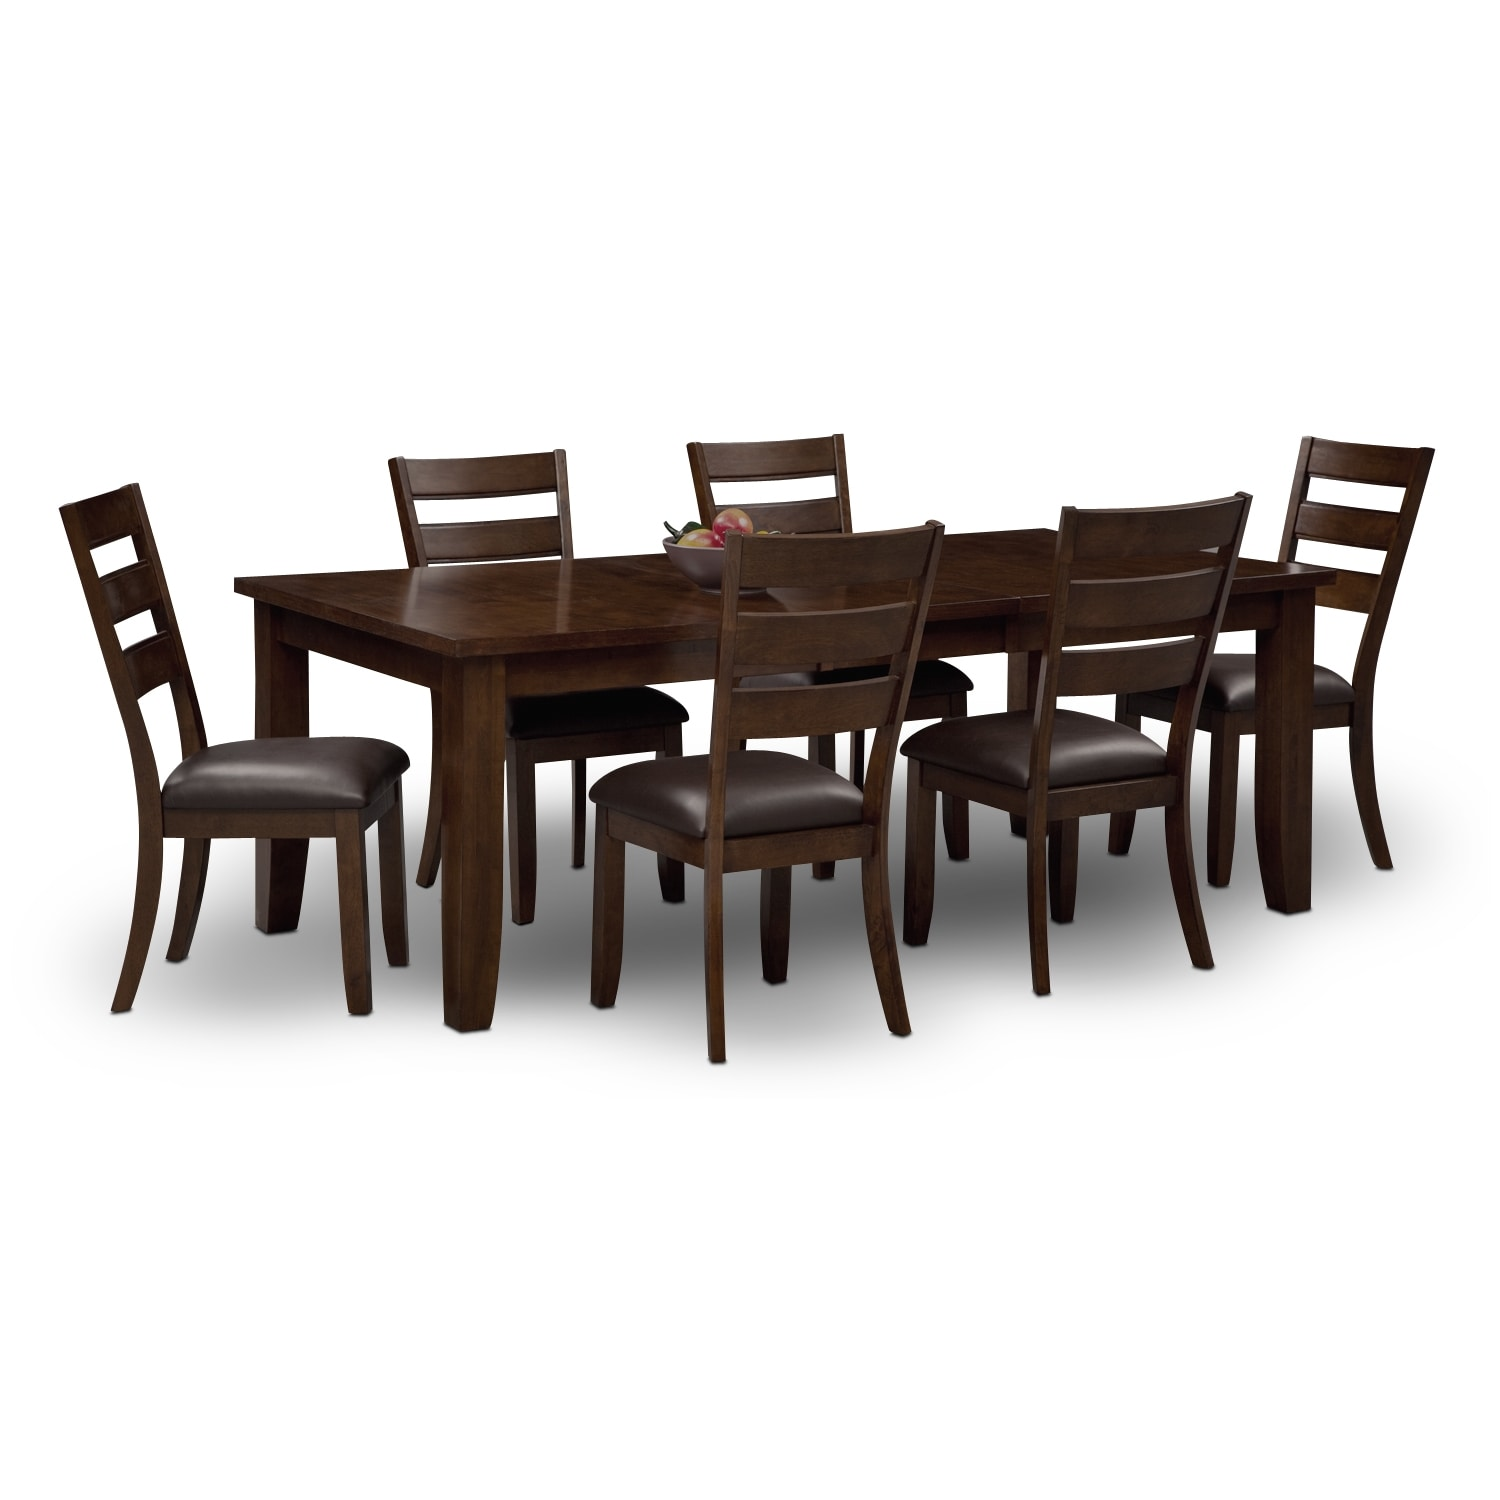 dining room sets 6 chairs small shower for elderly abaco table and brown value city furniture